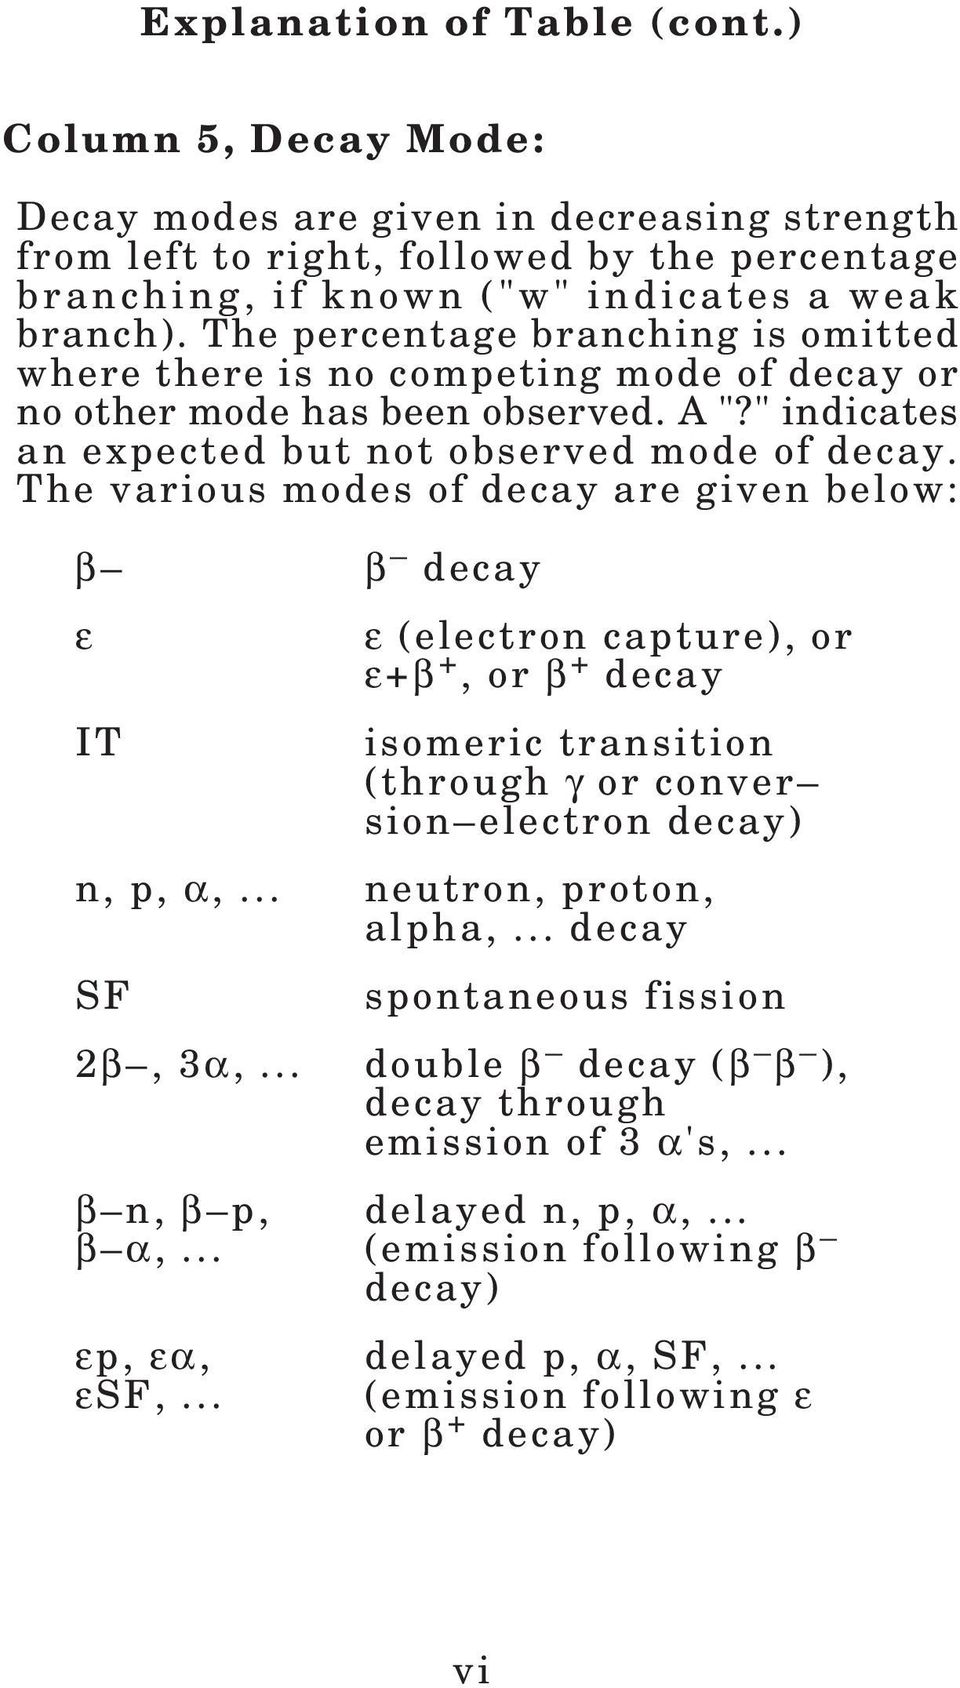 The various modes of decay are given below: β β decay ε IT ε (electron capture), or ε+β +, or β + decay isomeric transition (through γ or conver sion electron decay) n, p, α,... neutron, proton, alpha,.